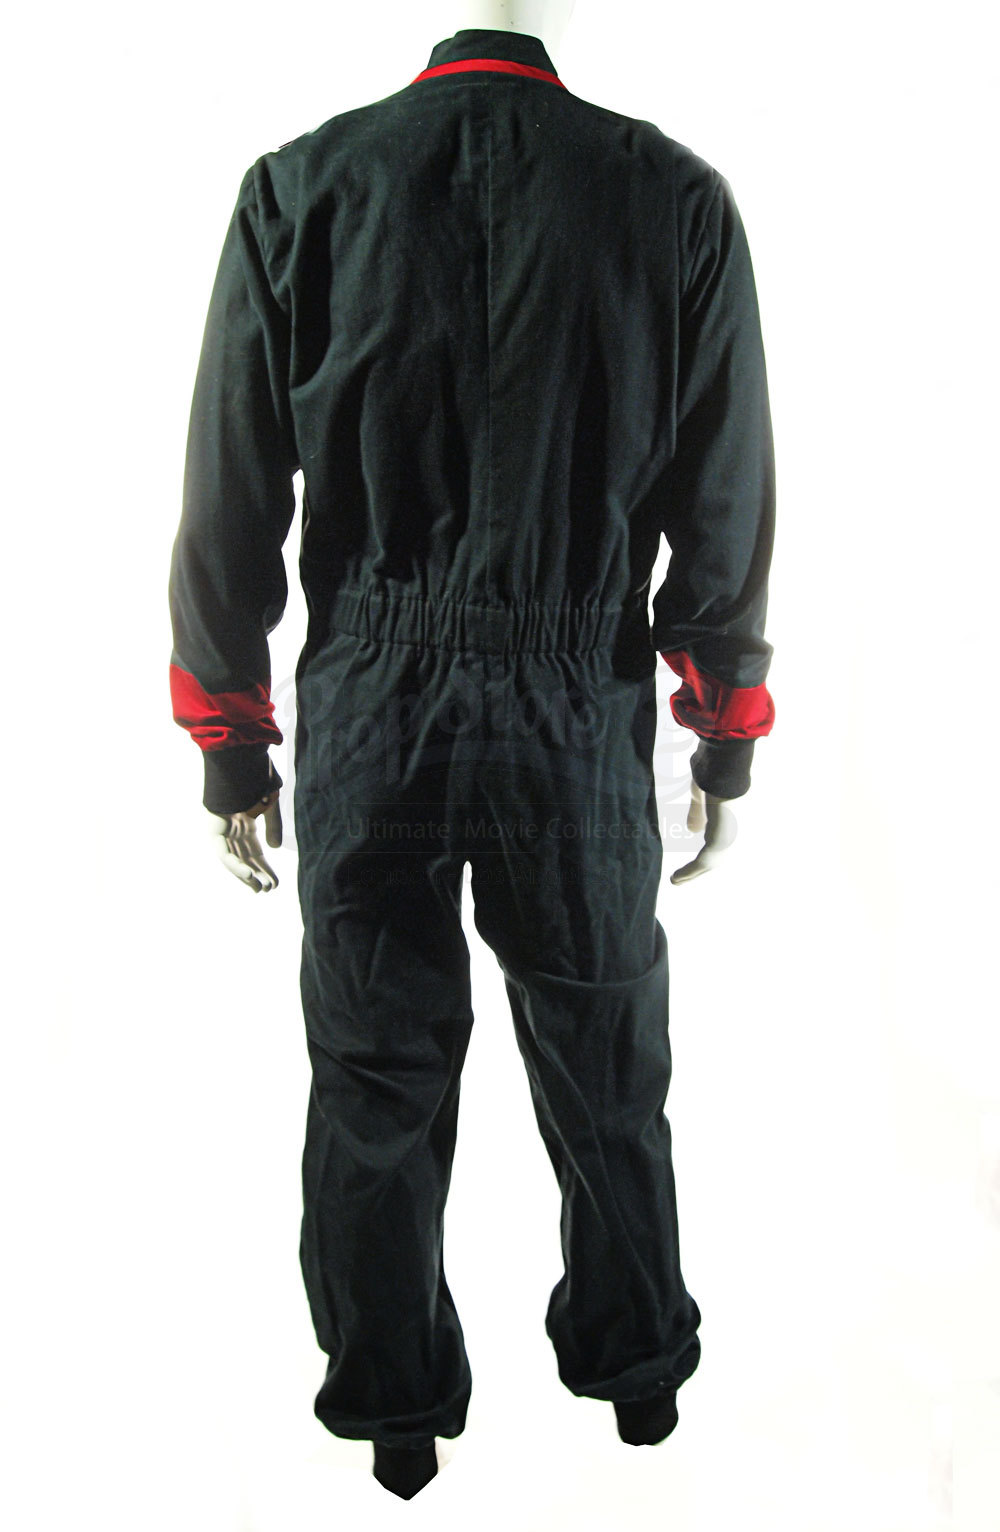 Rent A Pod >> Hadden Industries Lab Jumpsuit   Prop Store - Ultimate Movie Collectables